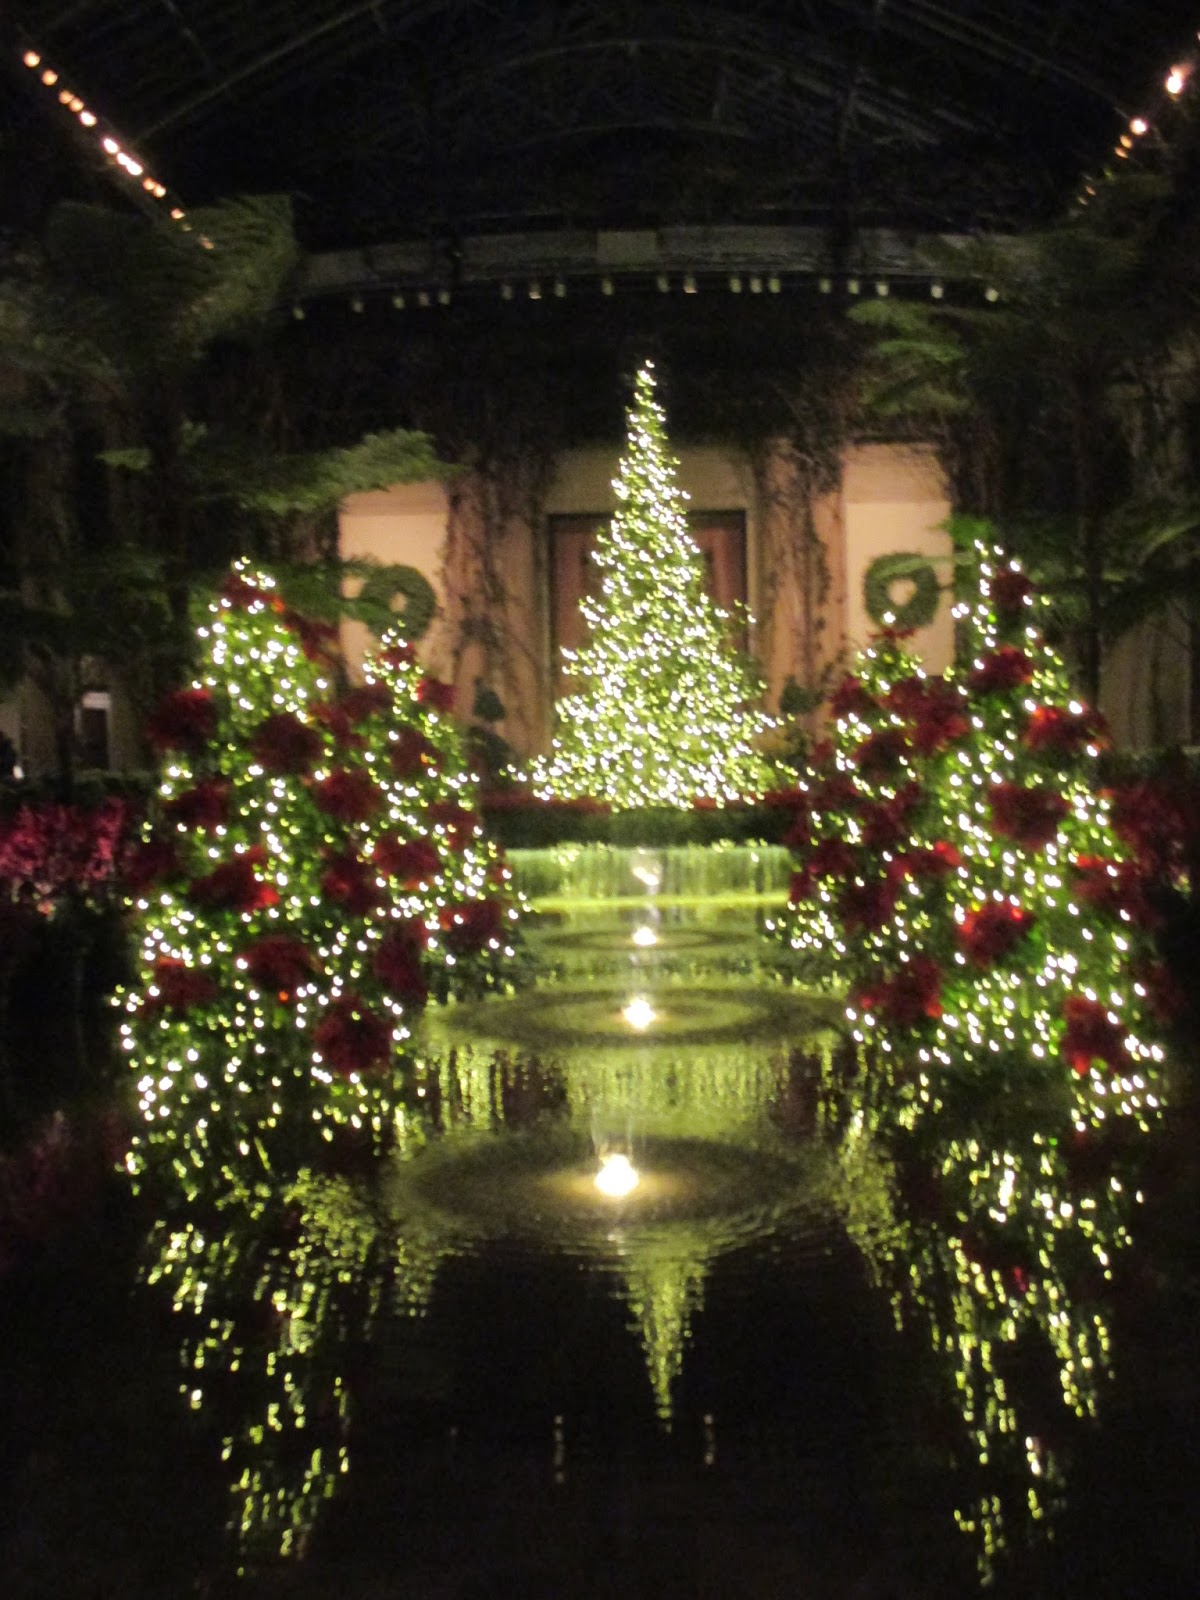 Garden Dream: Fantastic Illuminations at Longwood Gardens, Philadelphia